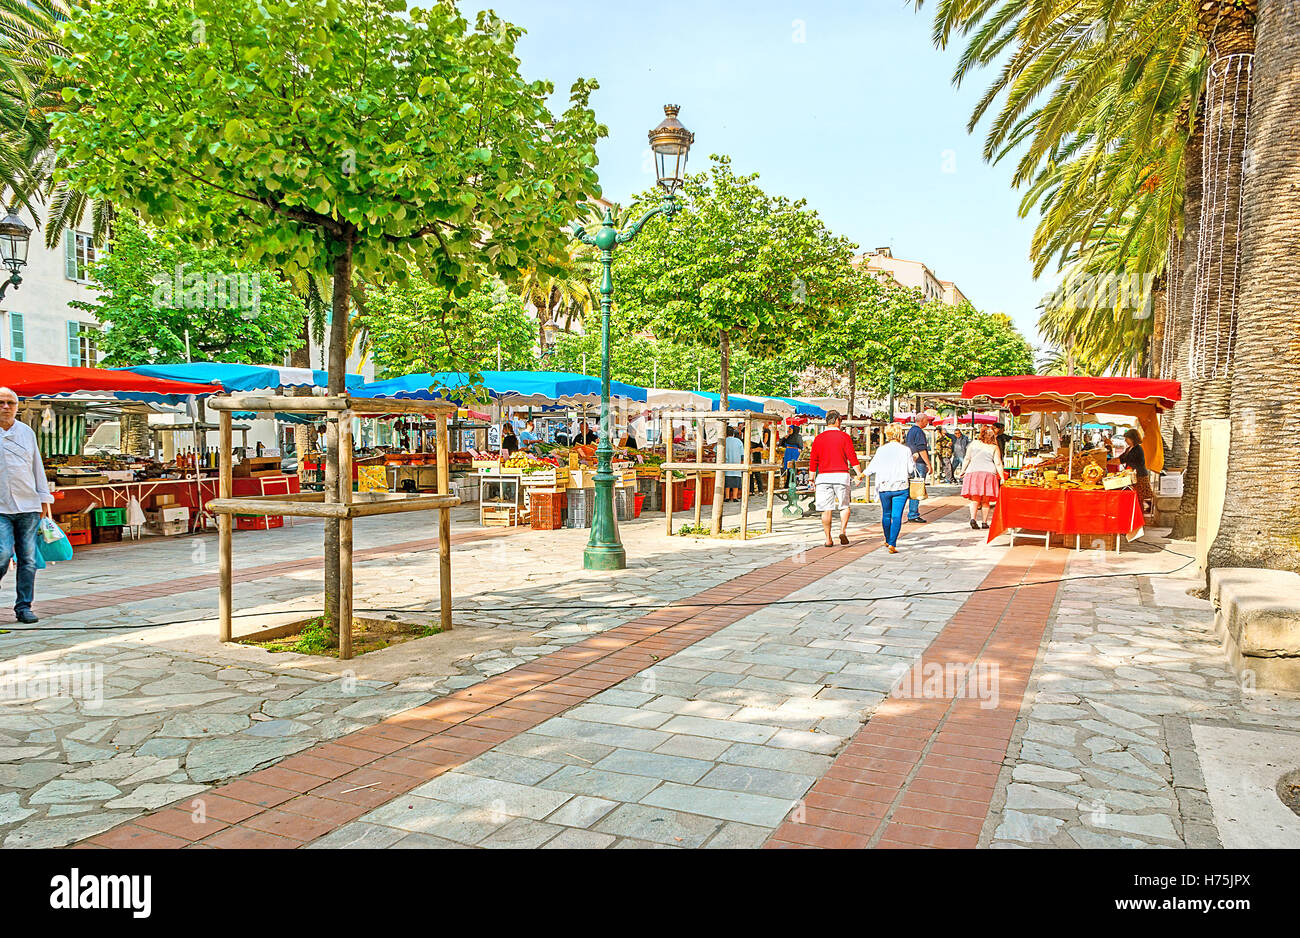 The Place Foch is the central market place with local specialties, home produced cheese, sausages, olives and alcohol - Stock Image